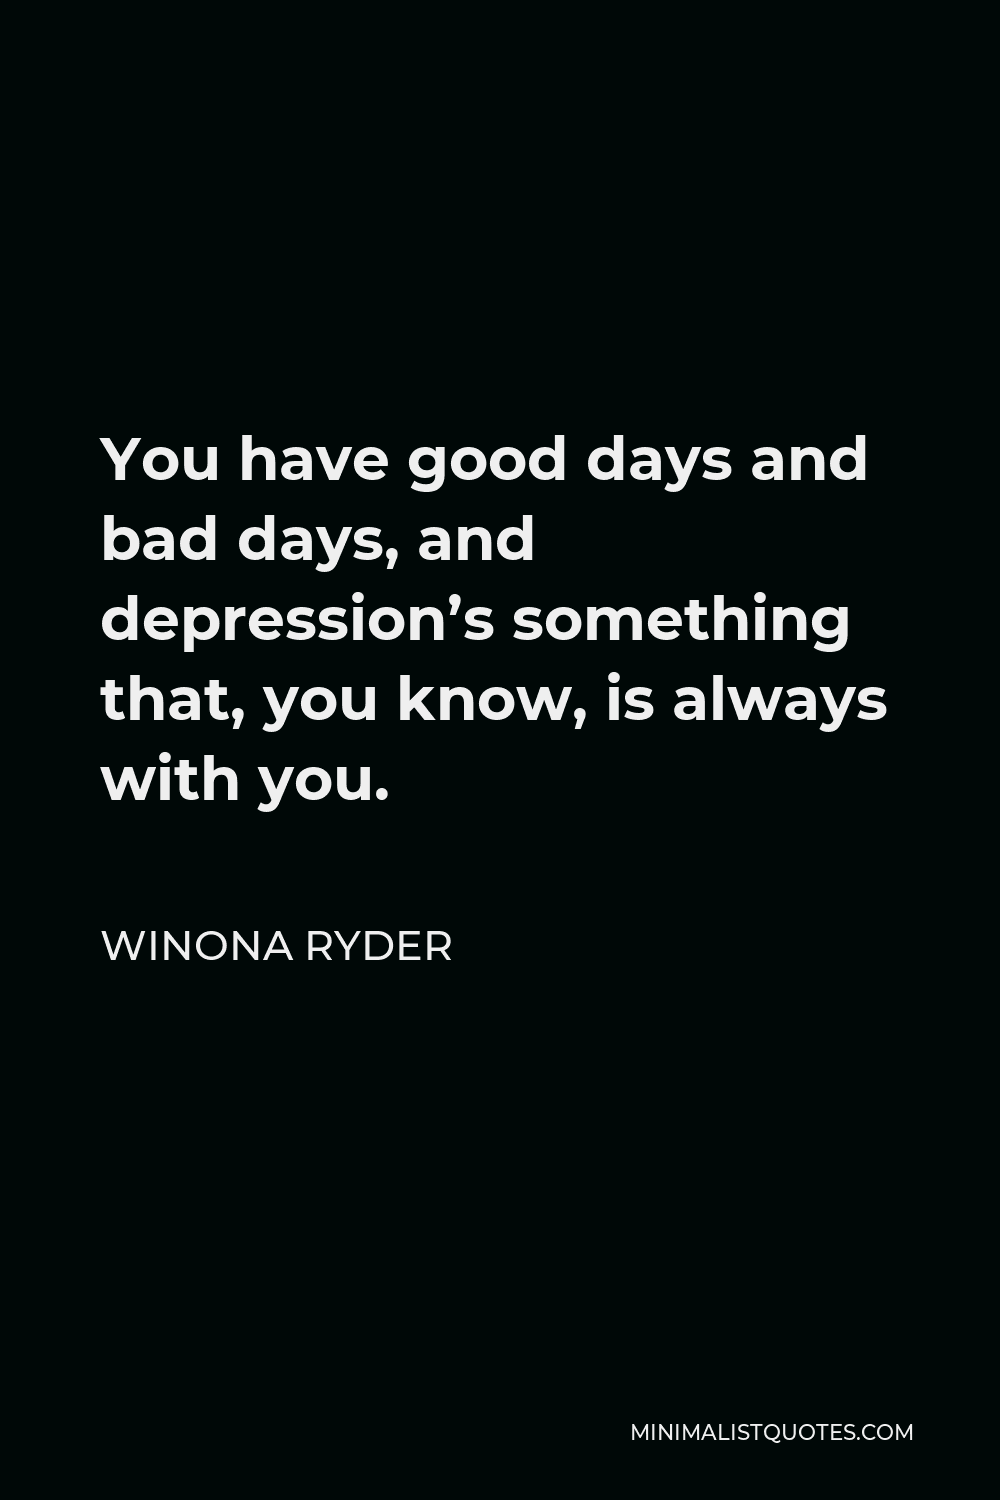 Winona Ryder Quote - You have good days and bad days, and depression's something that, you know, is always with you.